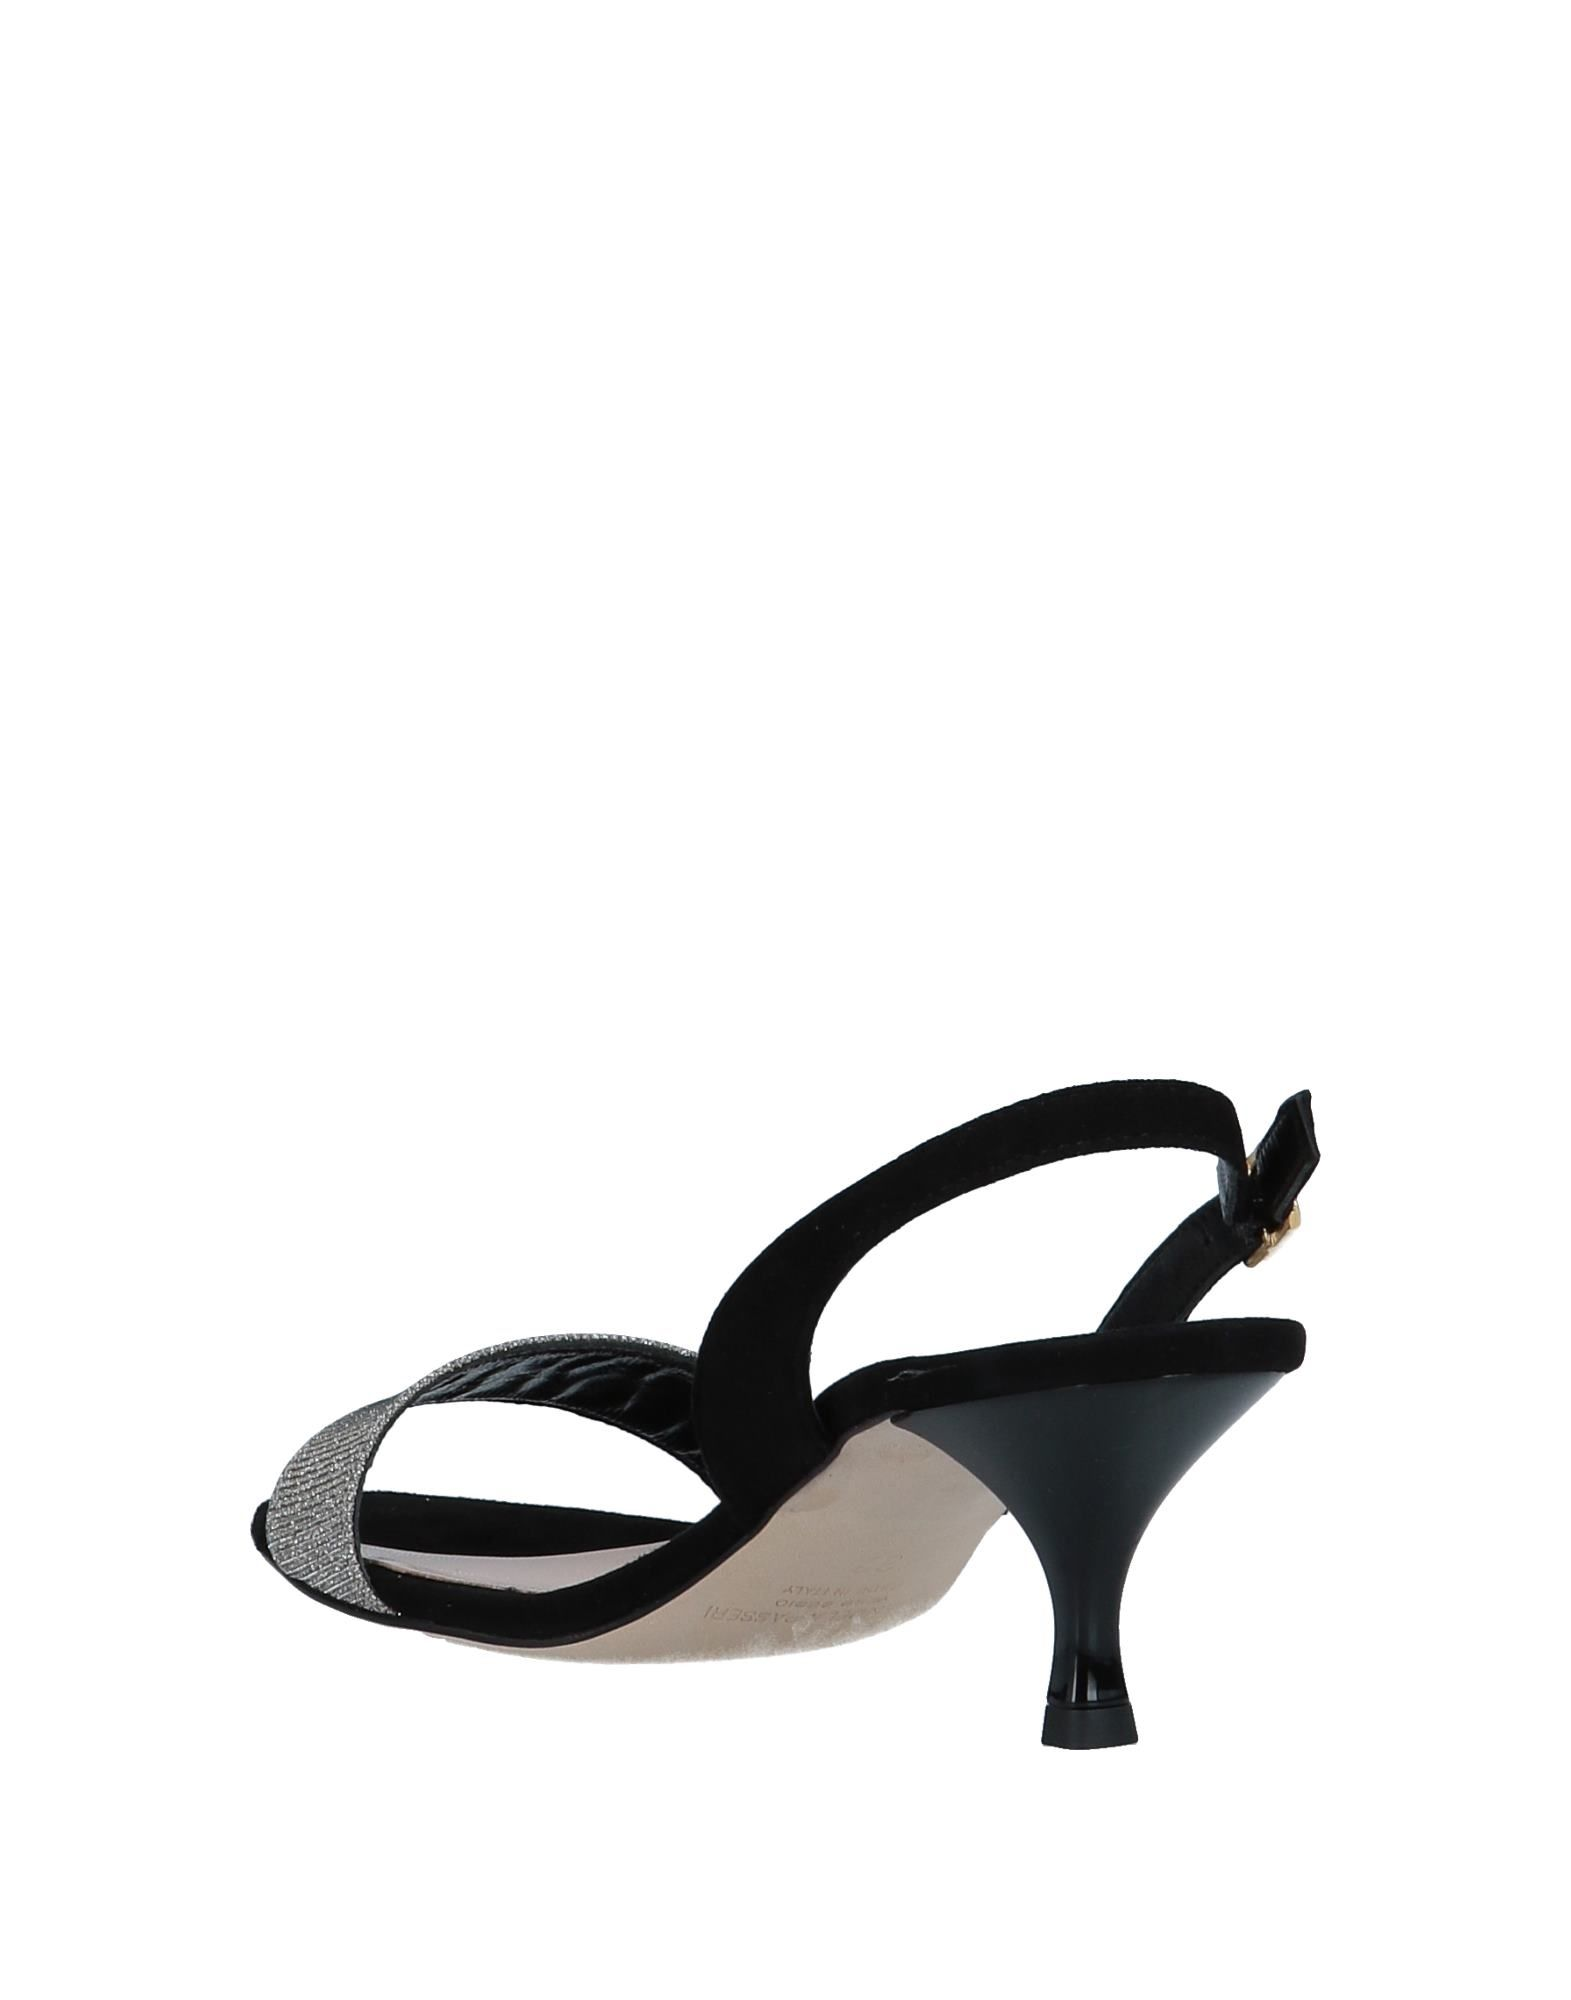 Emanuela Passeri Sandals - Women Women Women Emanuela Passeri Sandals online on  United Kingdom - 11564550ML 4a7331